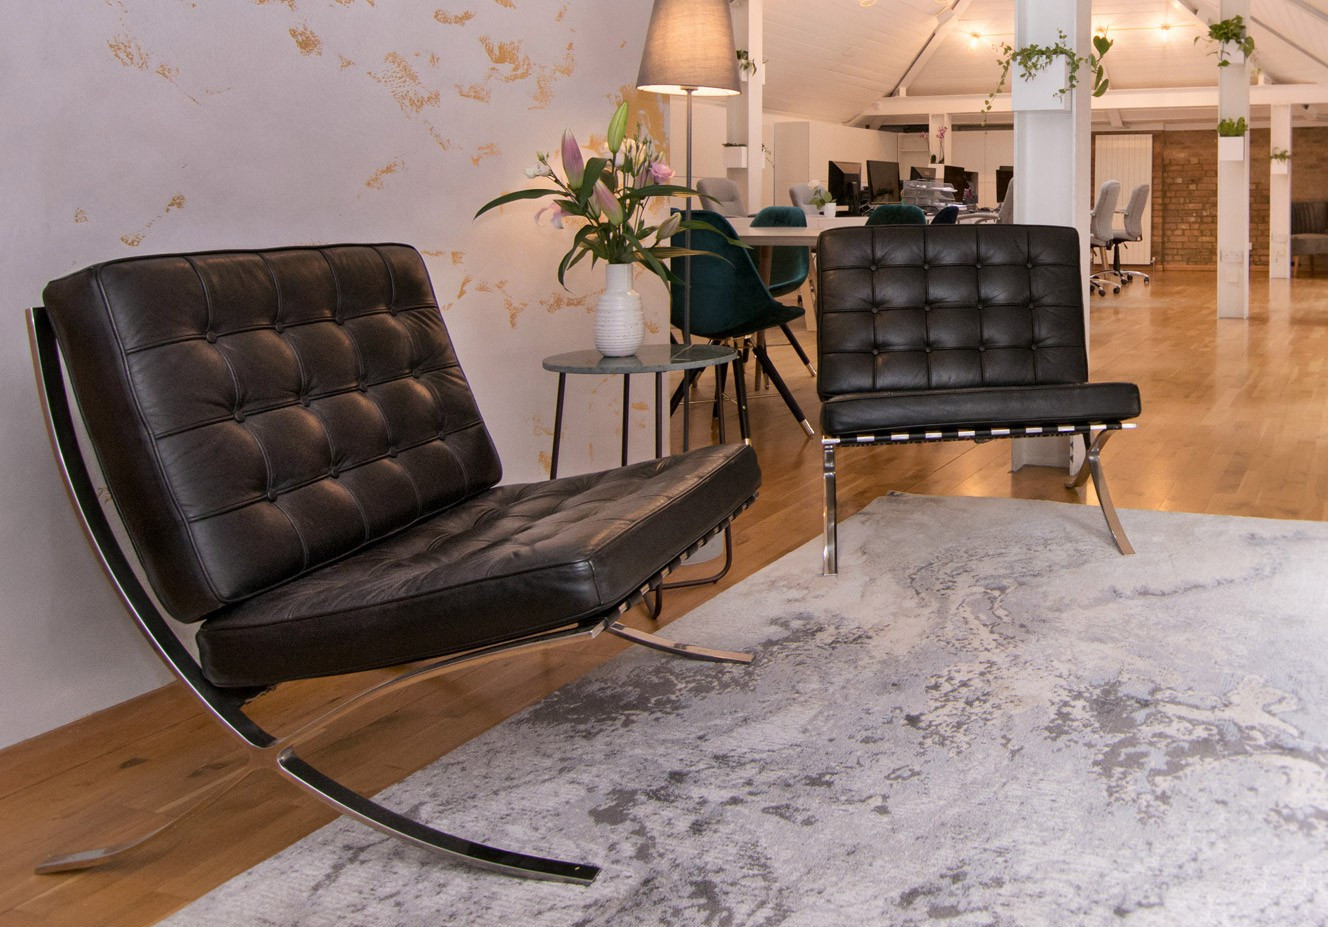 The two leather chairs as part of the Avalon commercial interior design reception seating area with a stand up lamp and a luxury white and gold leaf wallpaper